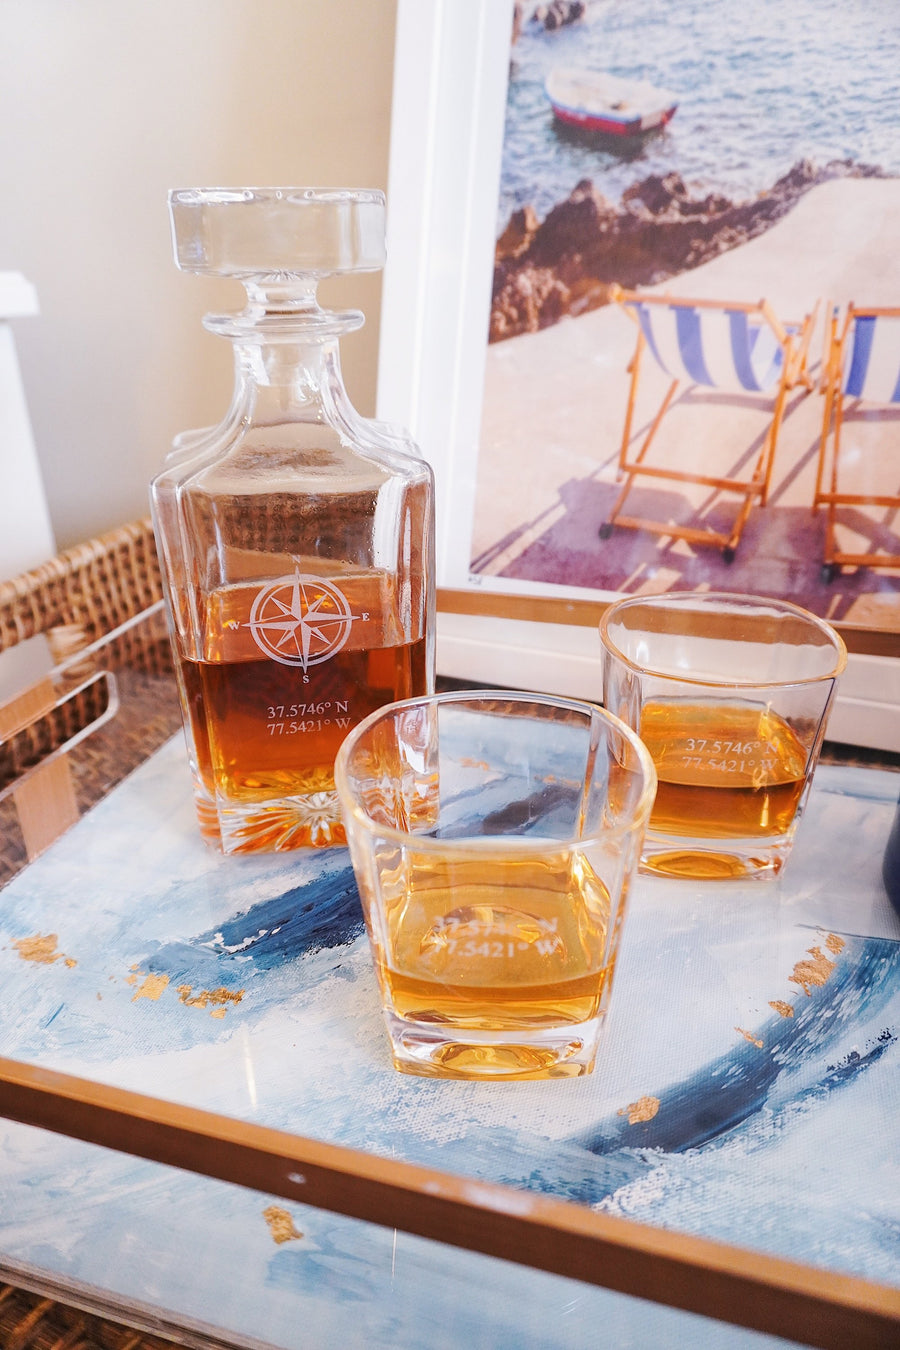 Personalized Whiskey Decanter Set - Compass Rose Whiskey Decanter Set Grain and Oak